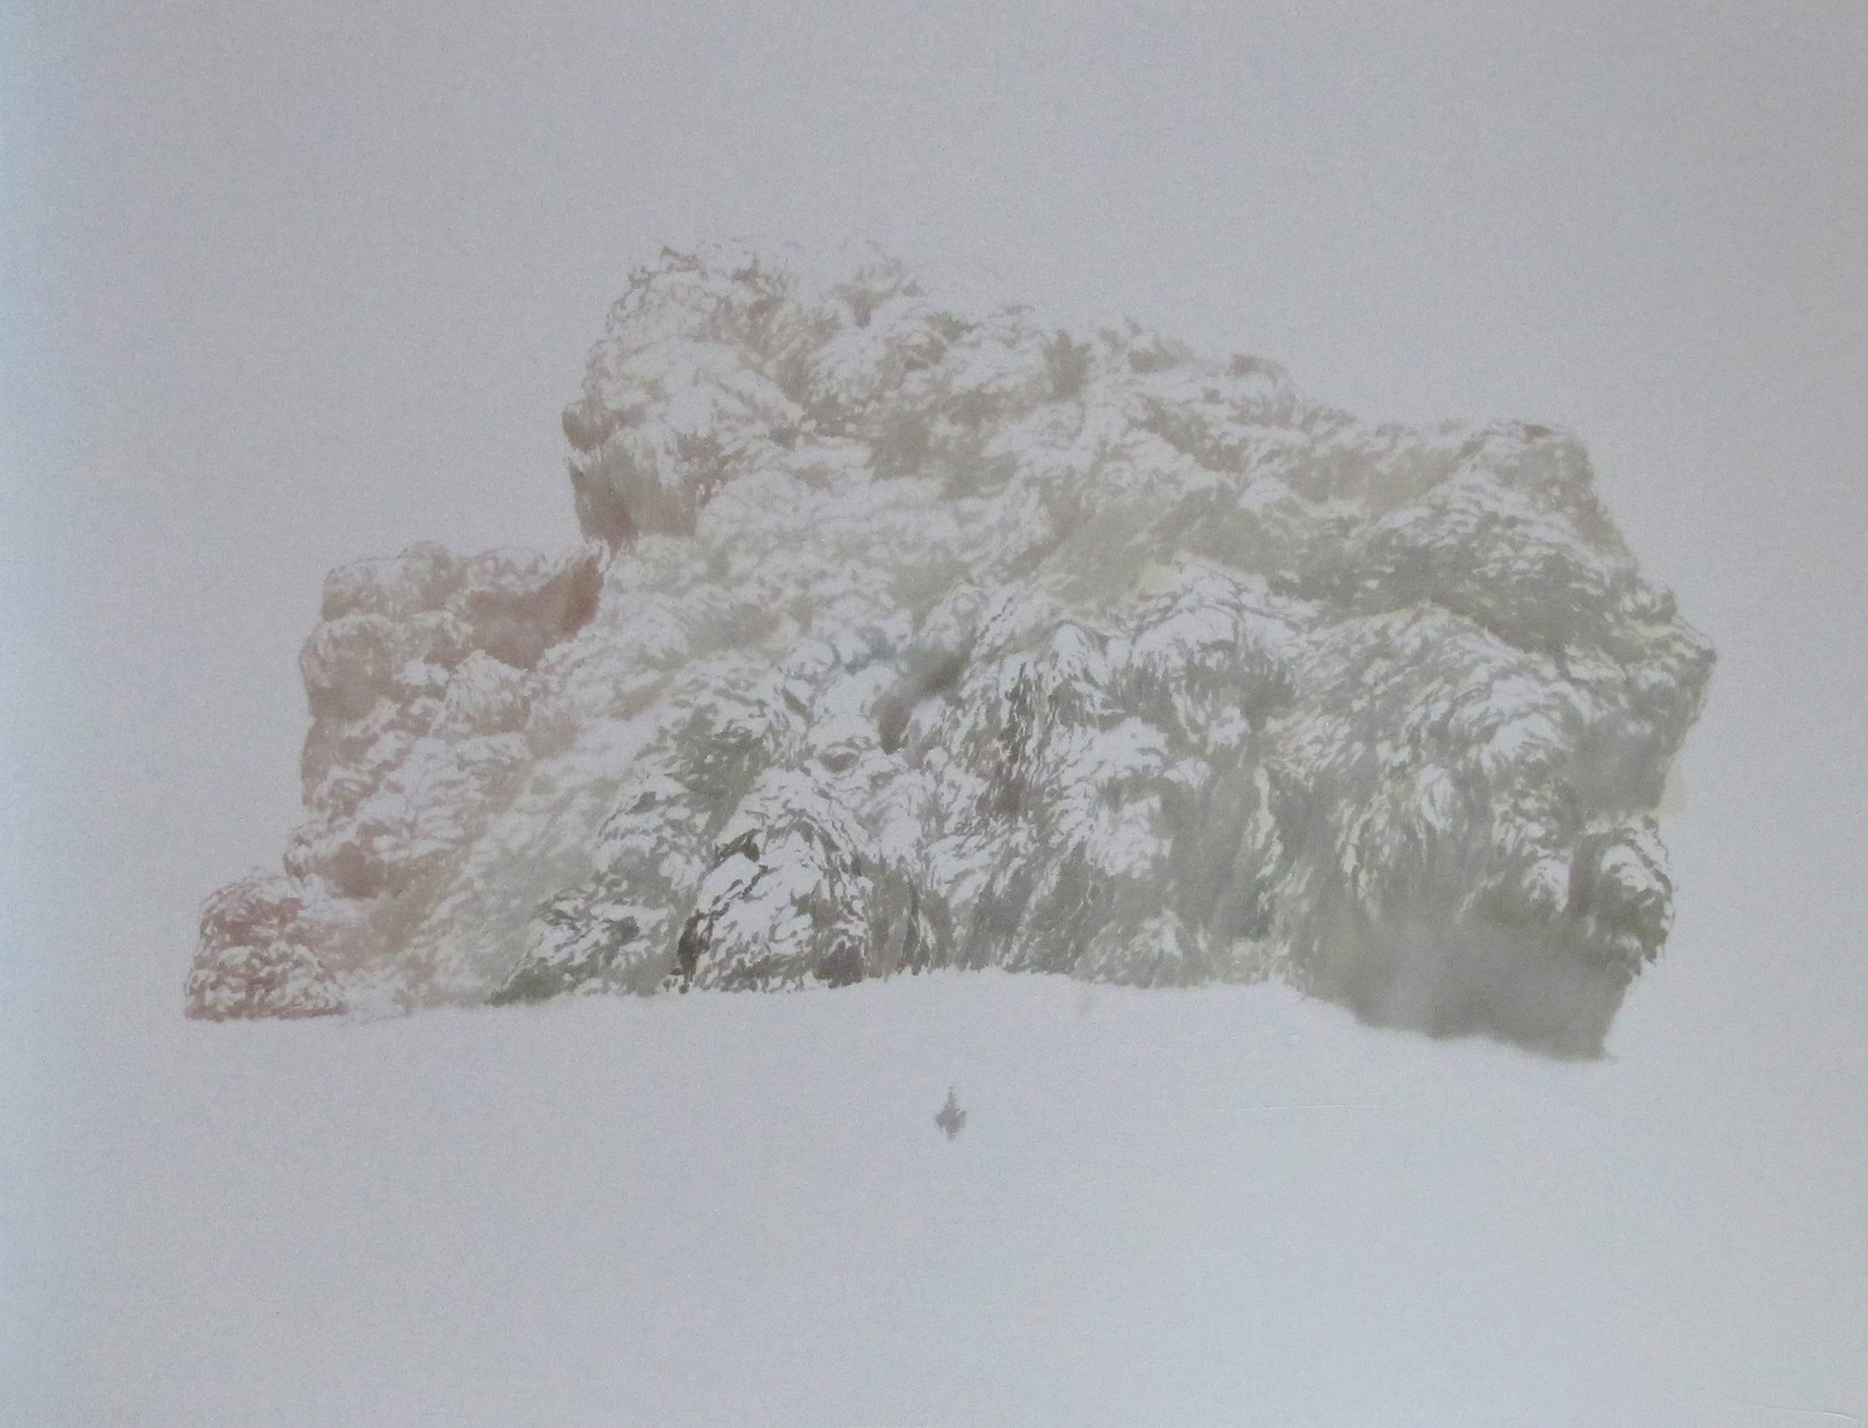 Untitled (volcano area)